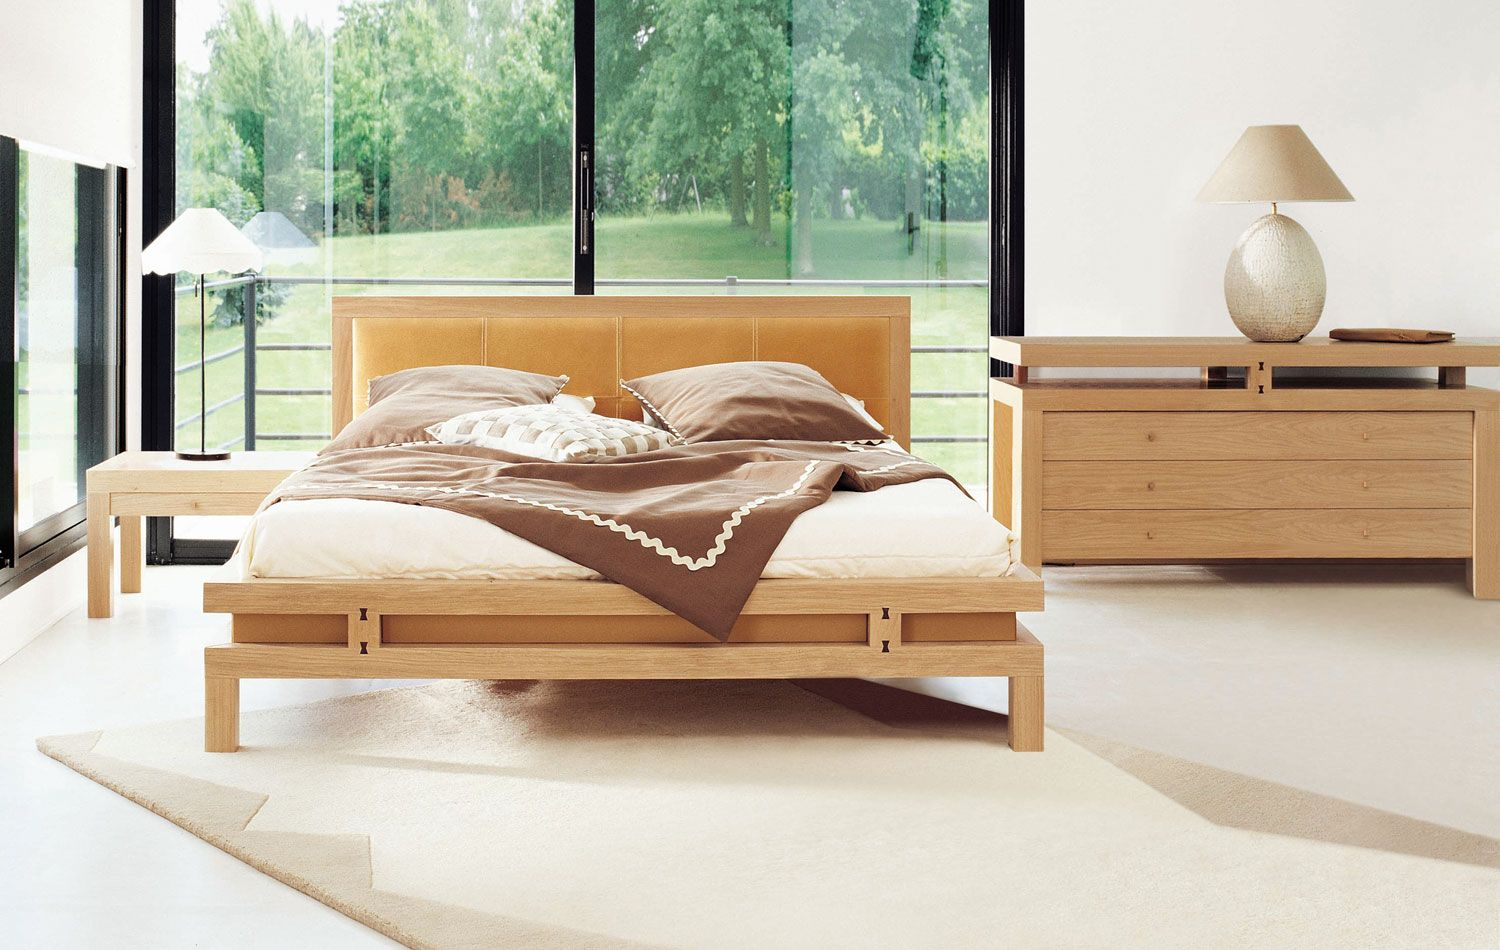 bedroom inspiration 20 modern beds by roche bobois wood bed